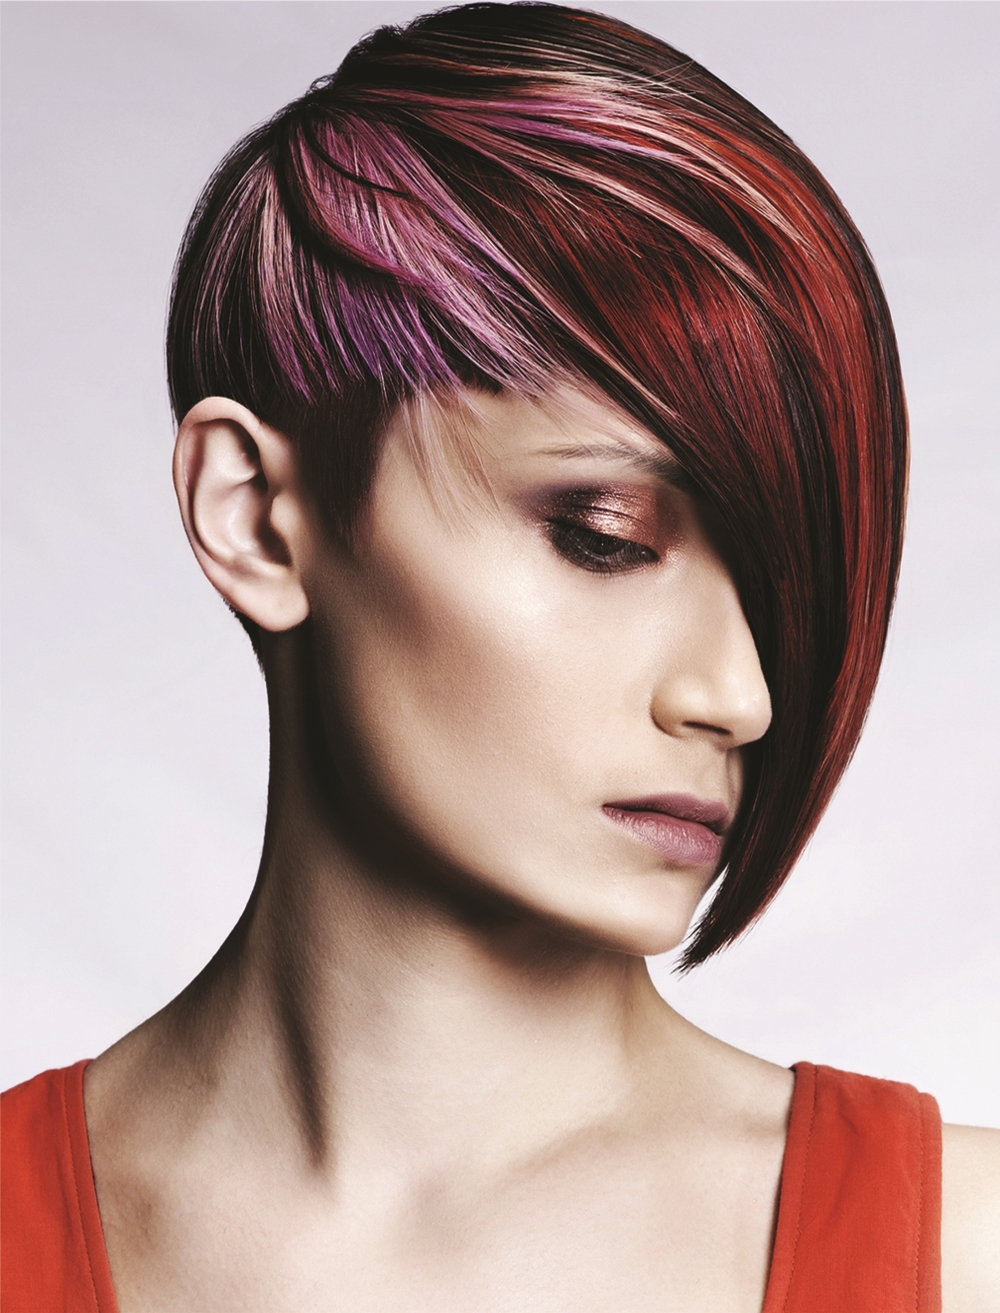 UK Winner and Global Finalist Creative Colour 2012